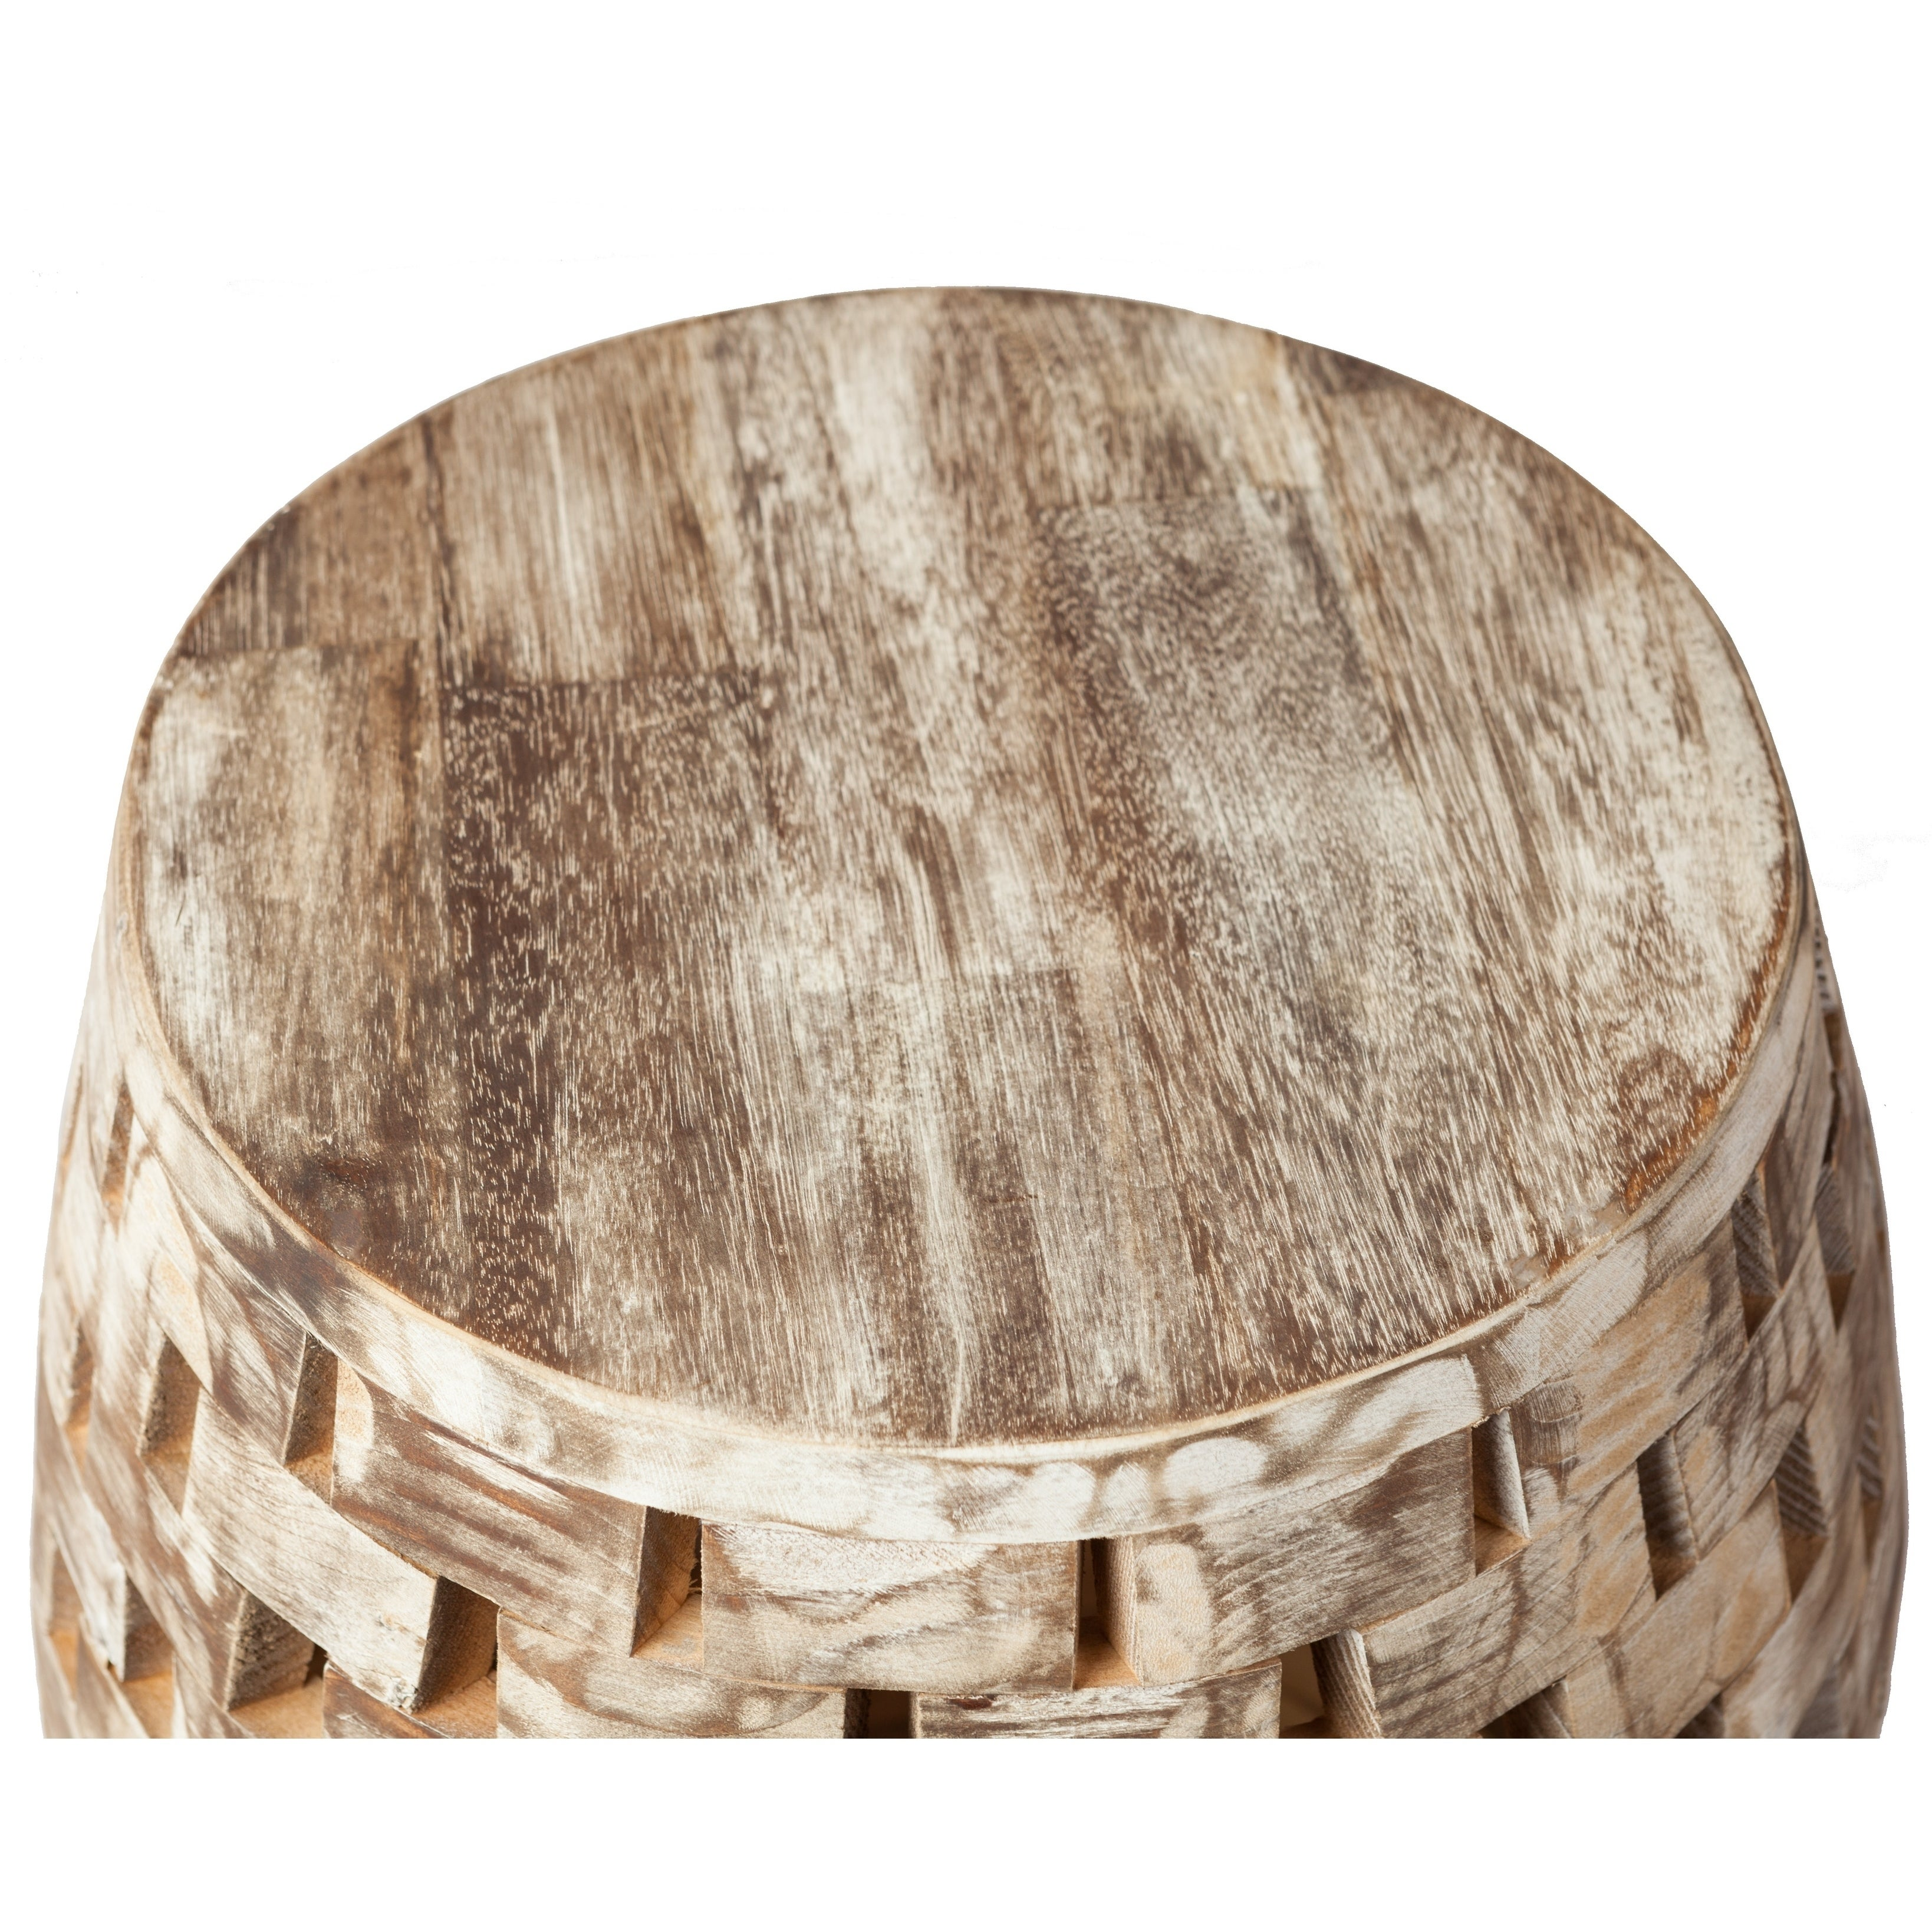 Charming Shop Recycled Wood Garden Stool   N/A   On Sale   Free Shipping Today    Overstock.com   21903858